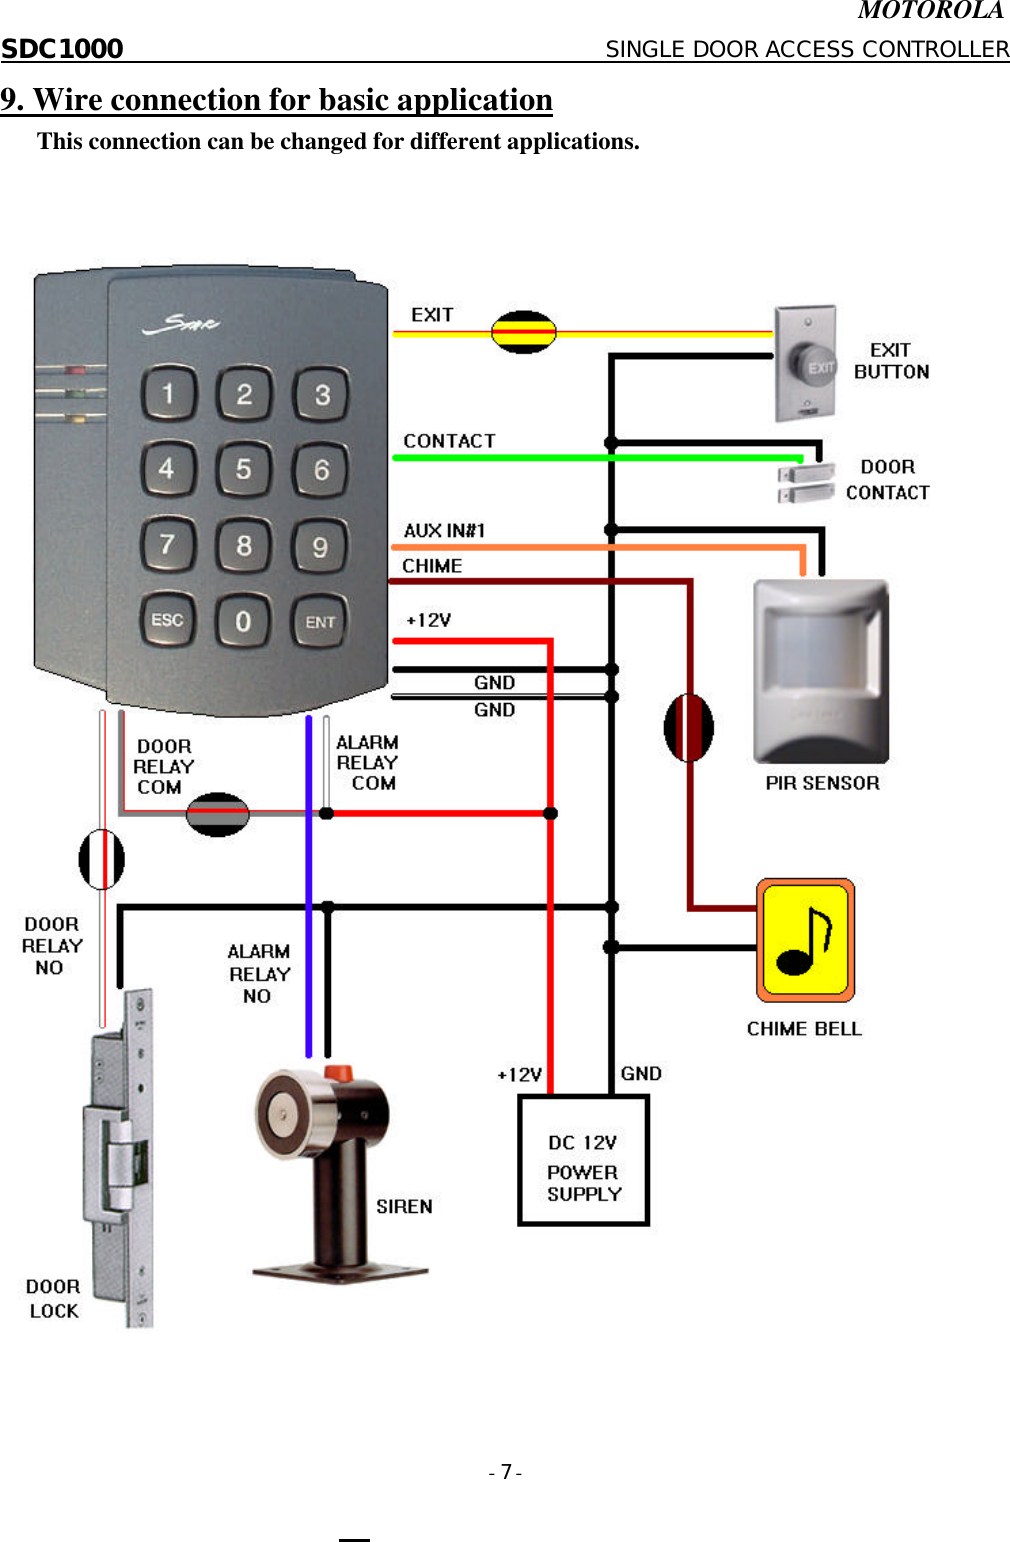 Hid Global Sdc1000 Door Access Controller User Manual Single Doorbell Wiring Schematic Motorola 7 9 Wire Connection For Basic Application